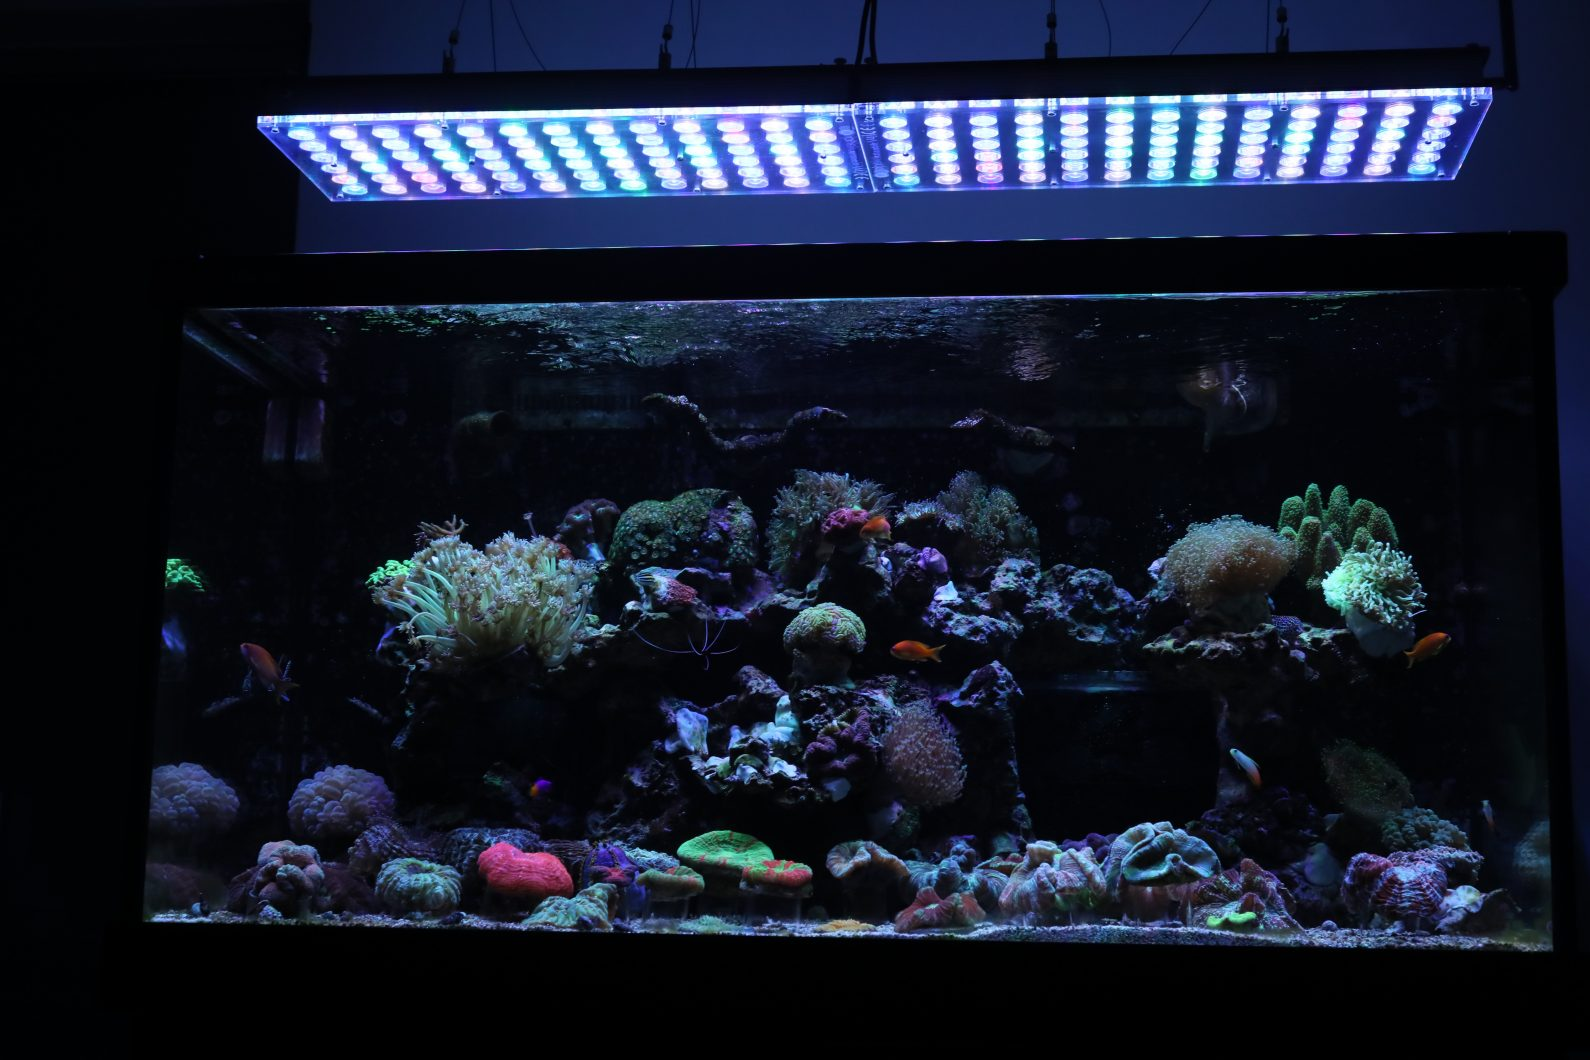 Orphek_Reef_Aquarium_LED_Light_Atlantik_v4_best_LED_Aquarium_lighting23